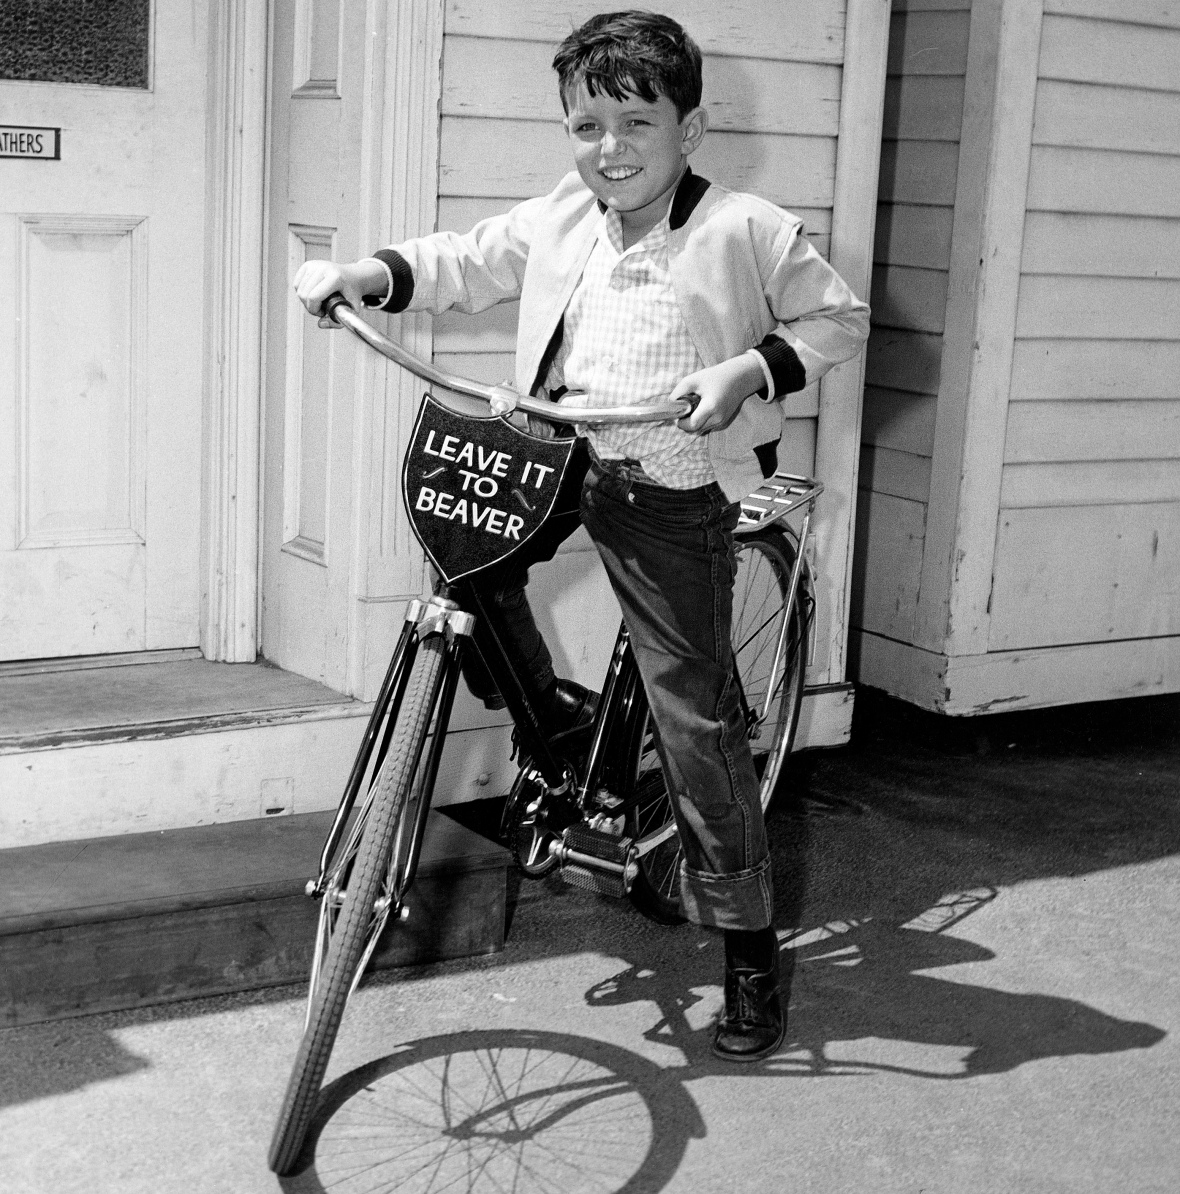 jerry mathers - bike